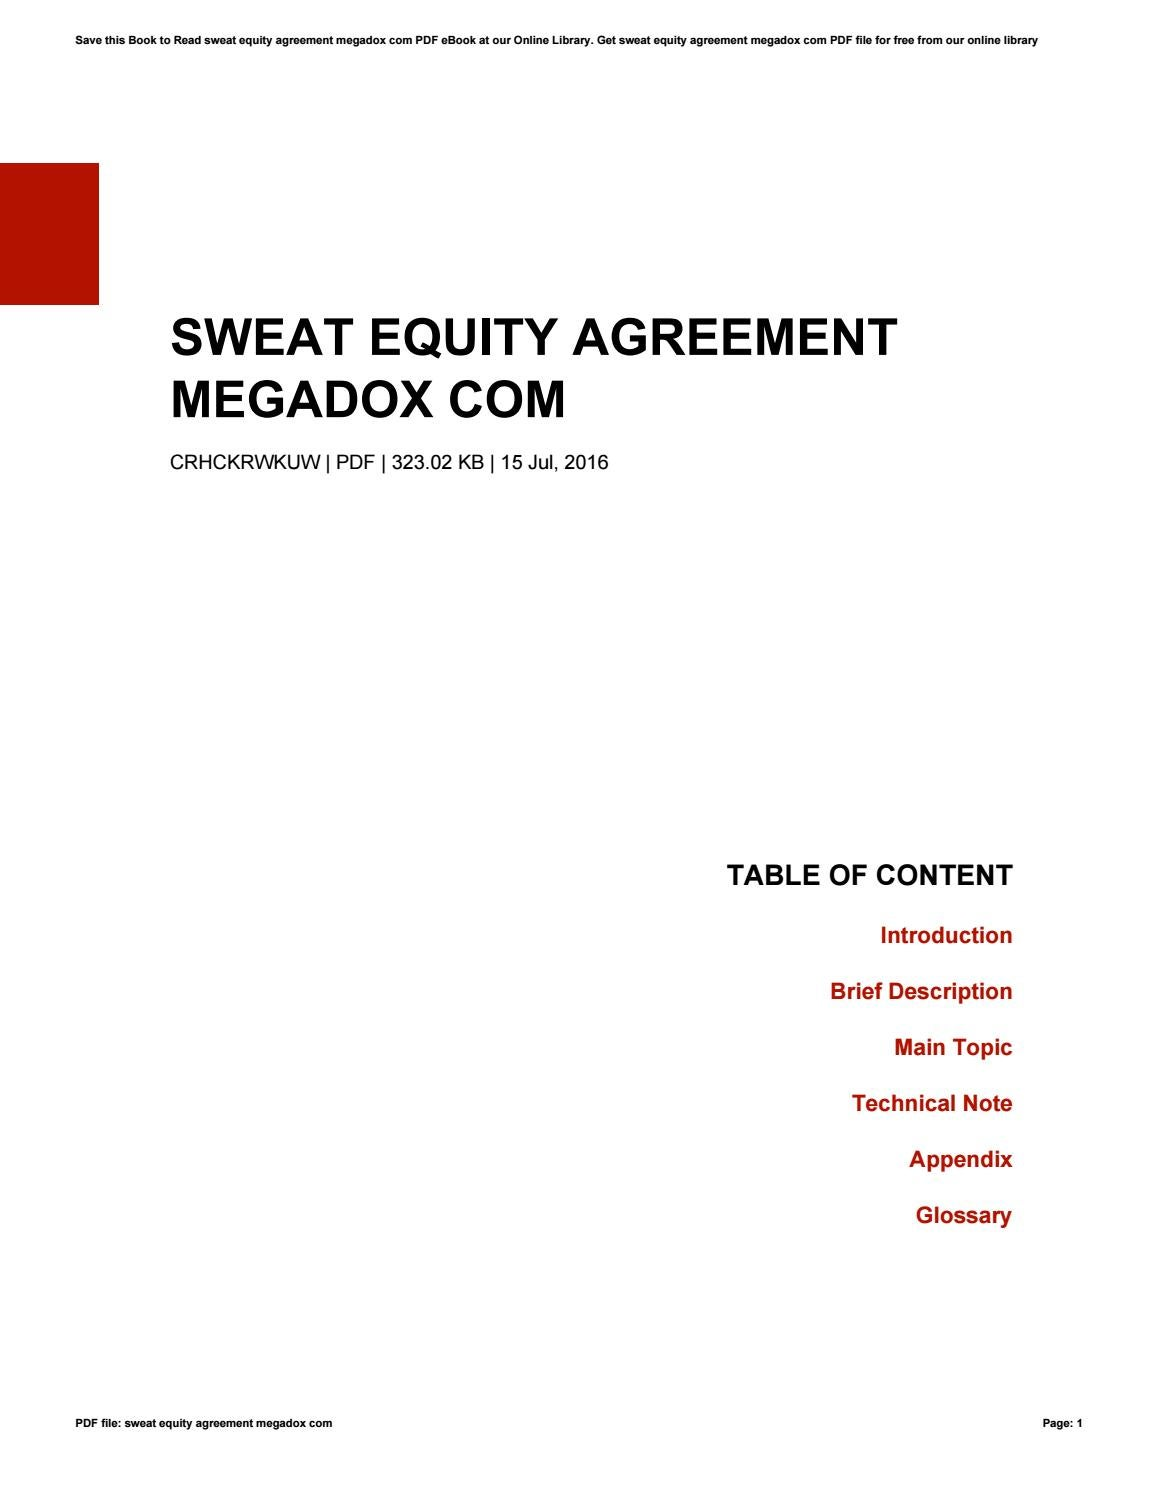 Sweat equity agreement megadox com by theresaholford4092 for Sweat equity contract template